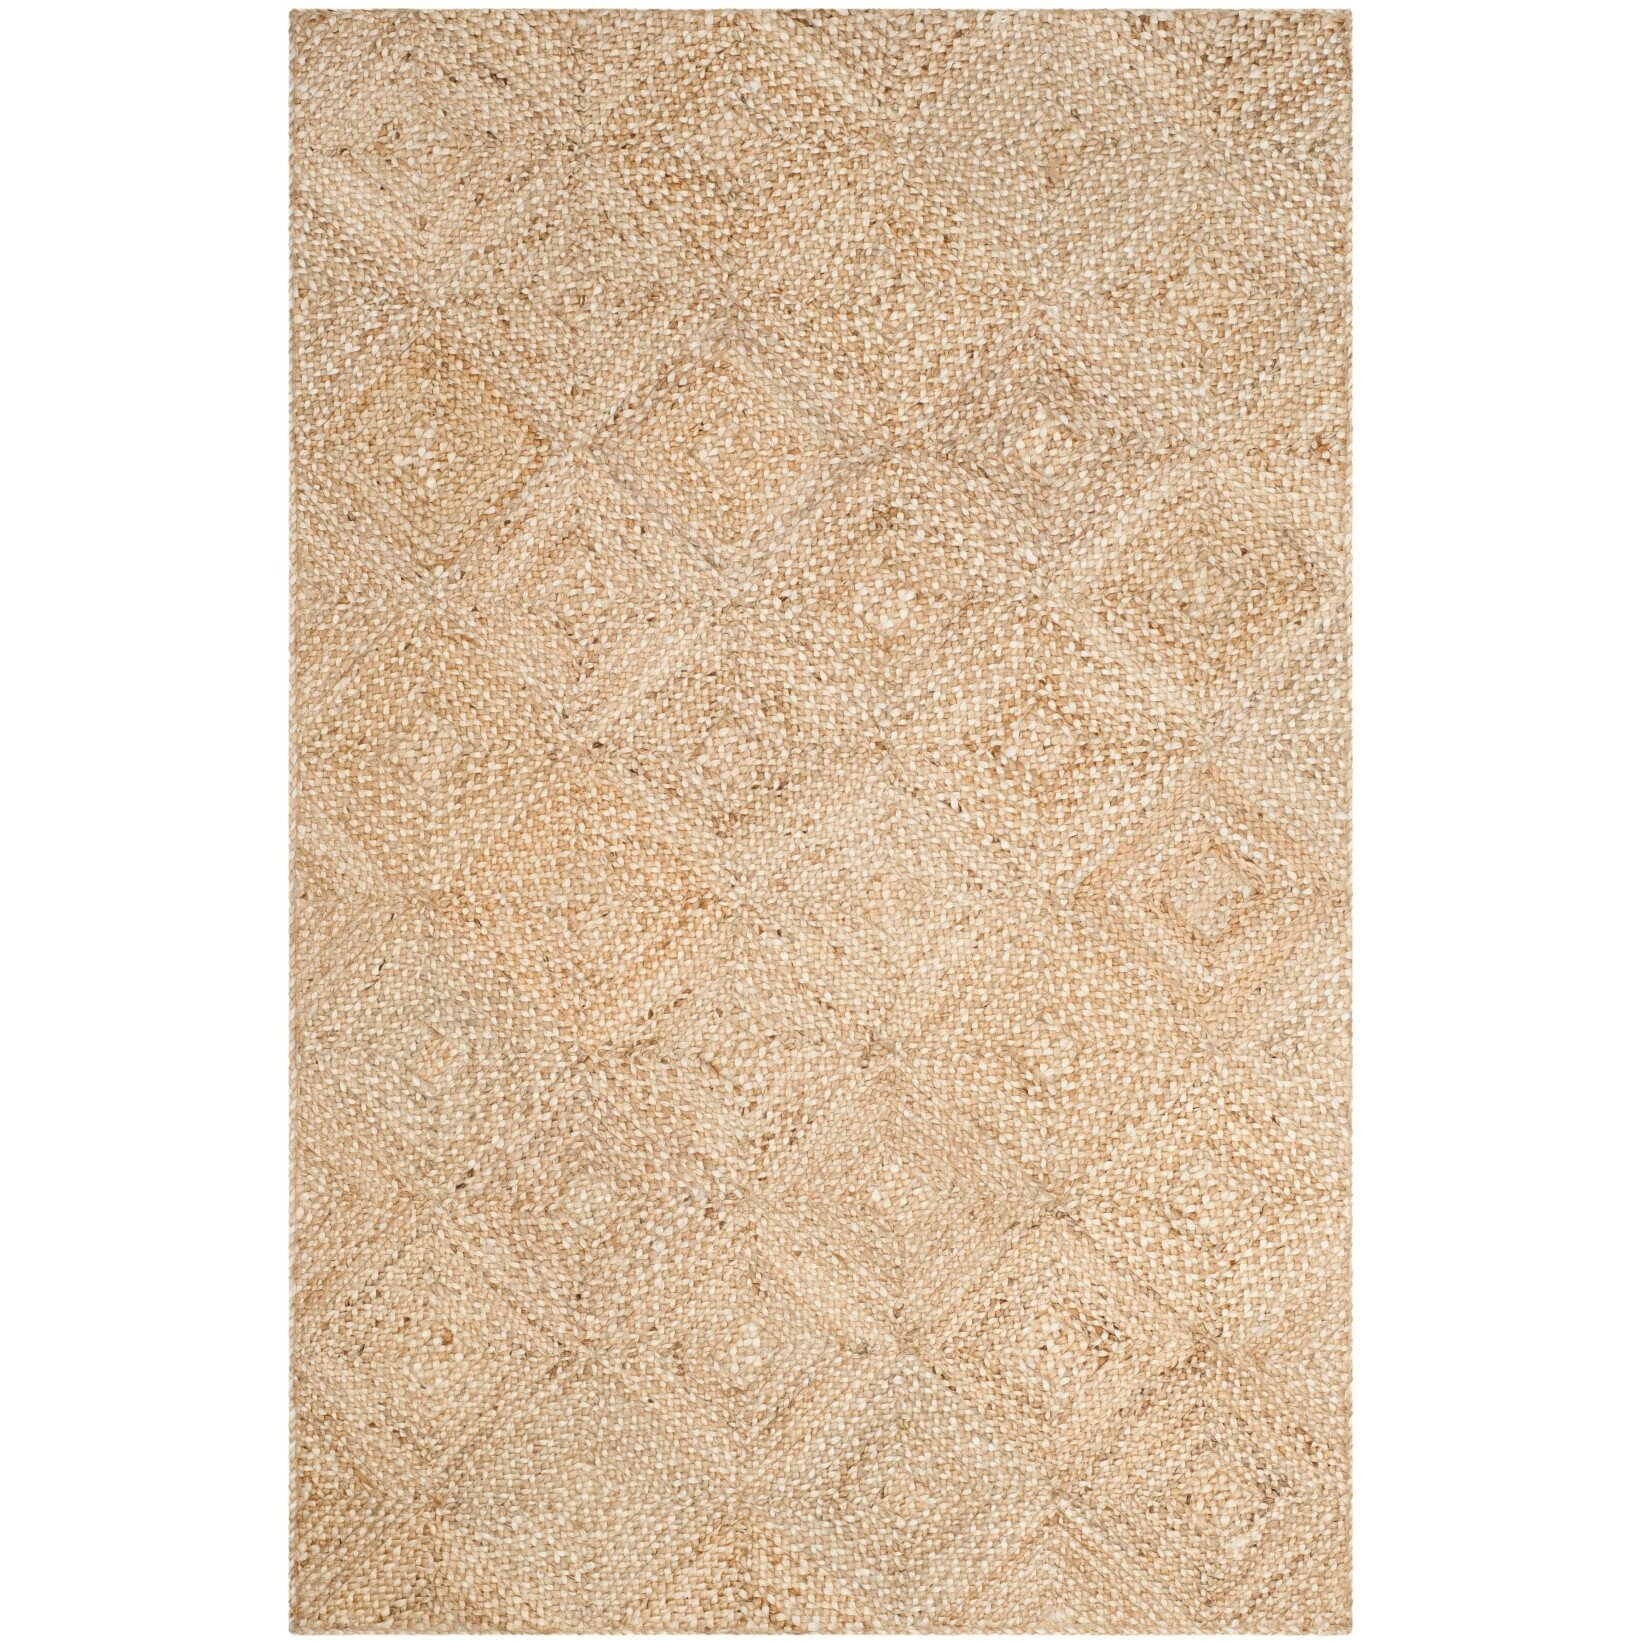 My Dog Ate Carpet Fibers: World Menagerie Abrahams Hand-Woven Beige Area Rug